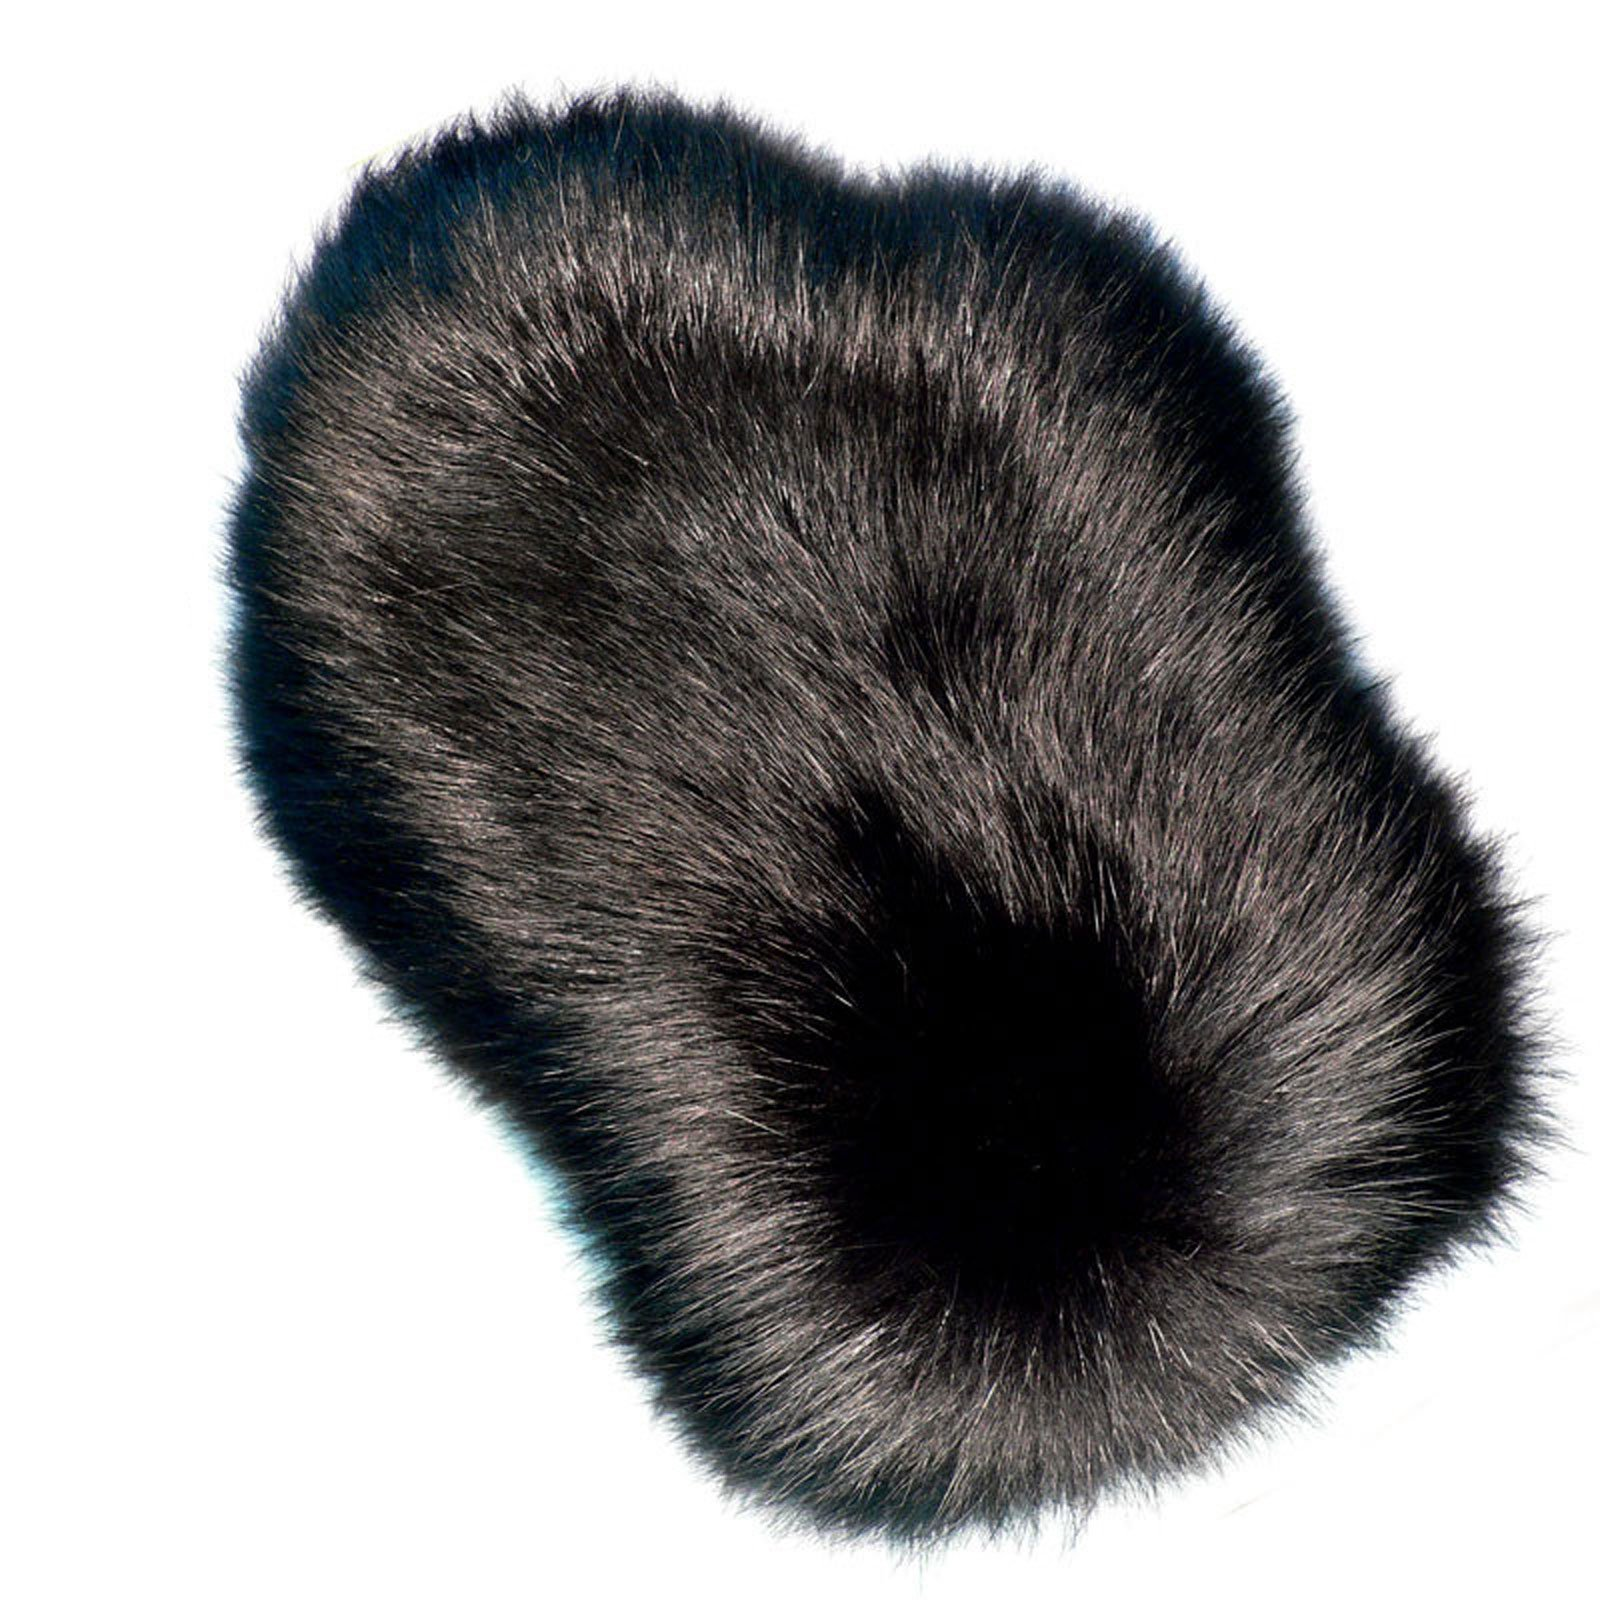 MinkgLove Fox Massage Glove, Textured and Silky Soft Feel, Ranch Black Color, Hand Tailored, Unisex, One Size - Double Sided Fur